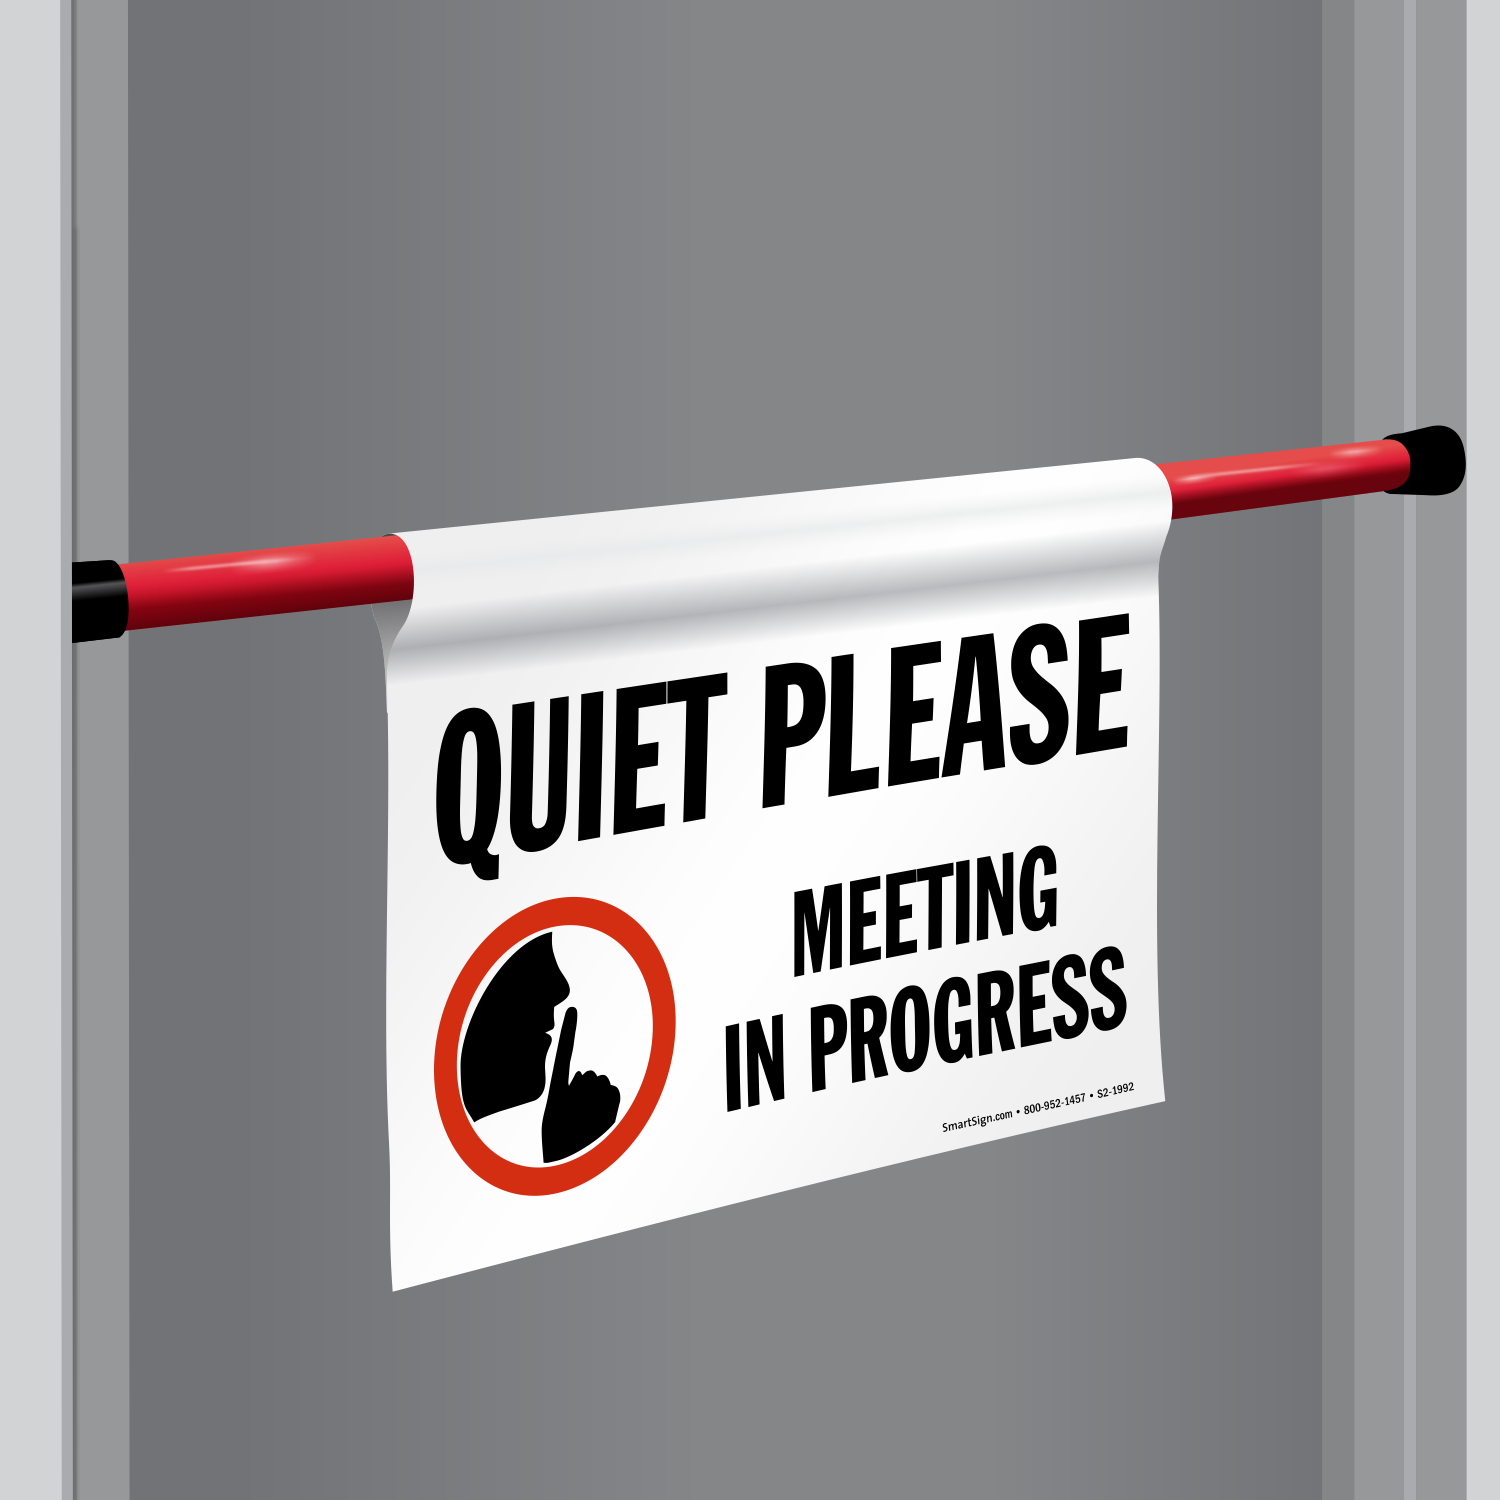 Quiet Please Signs